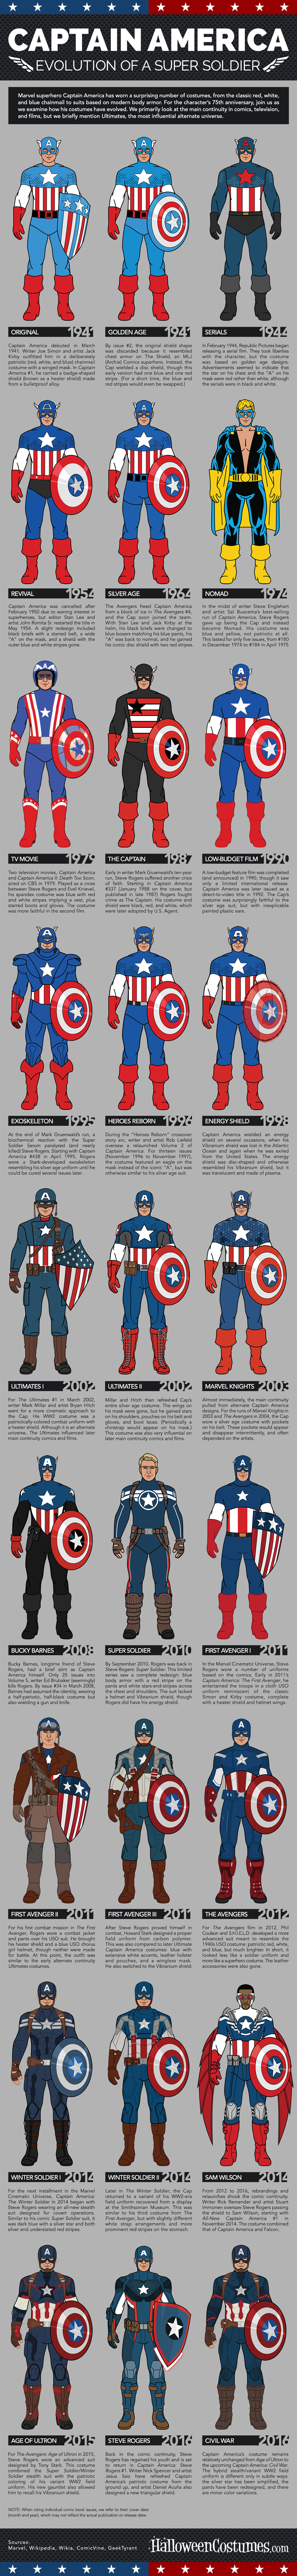 Captain America Costumes: Evolution of a Super Soldier